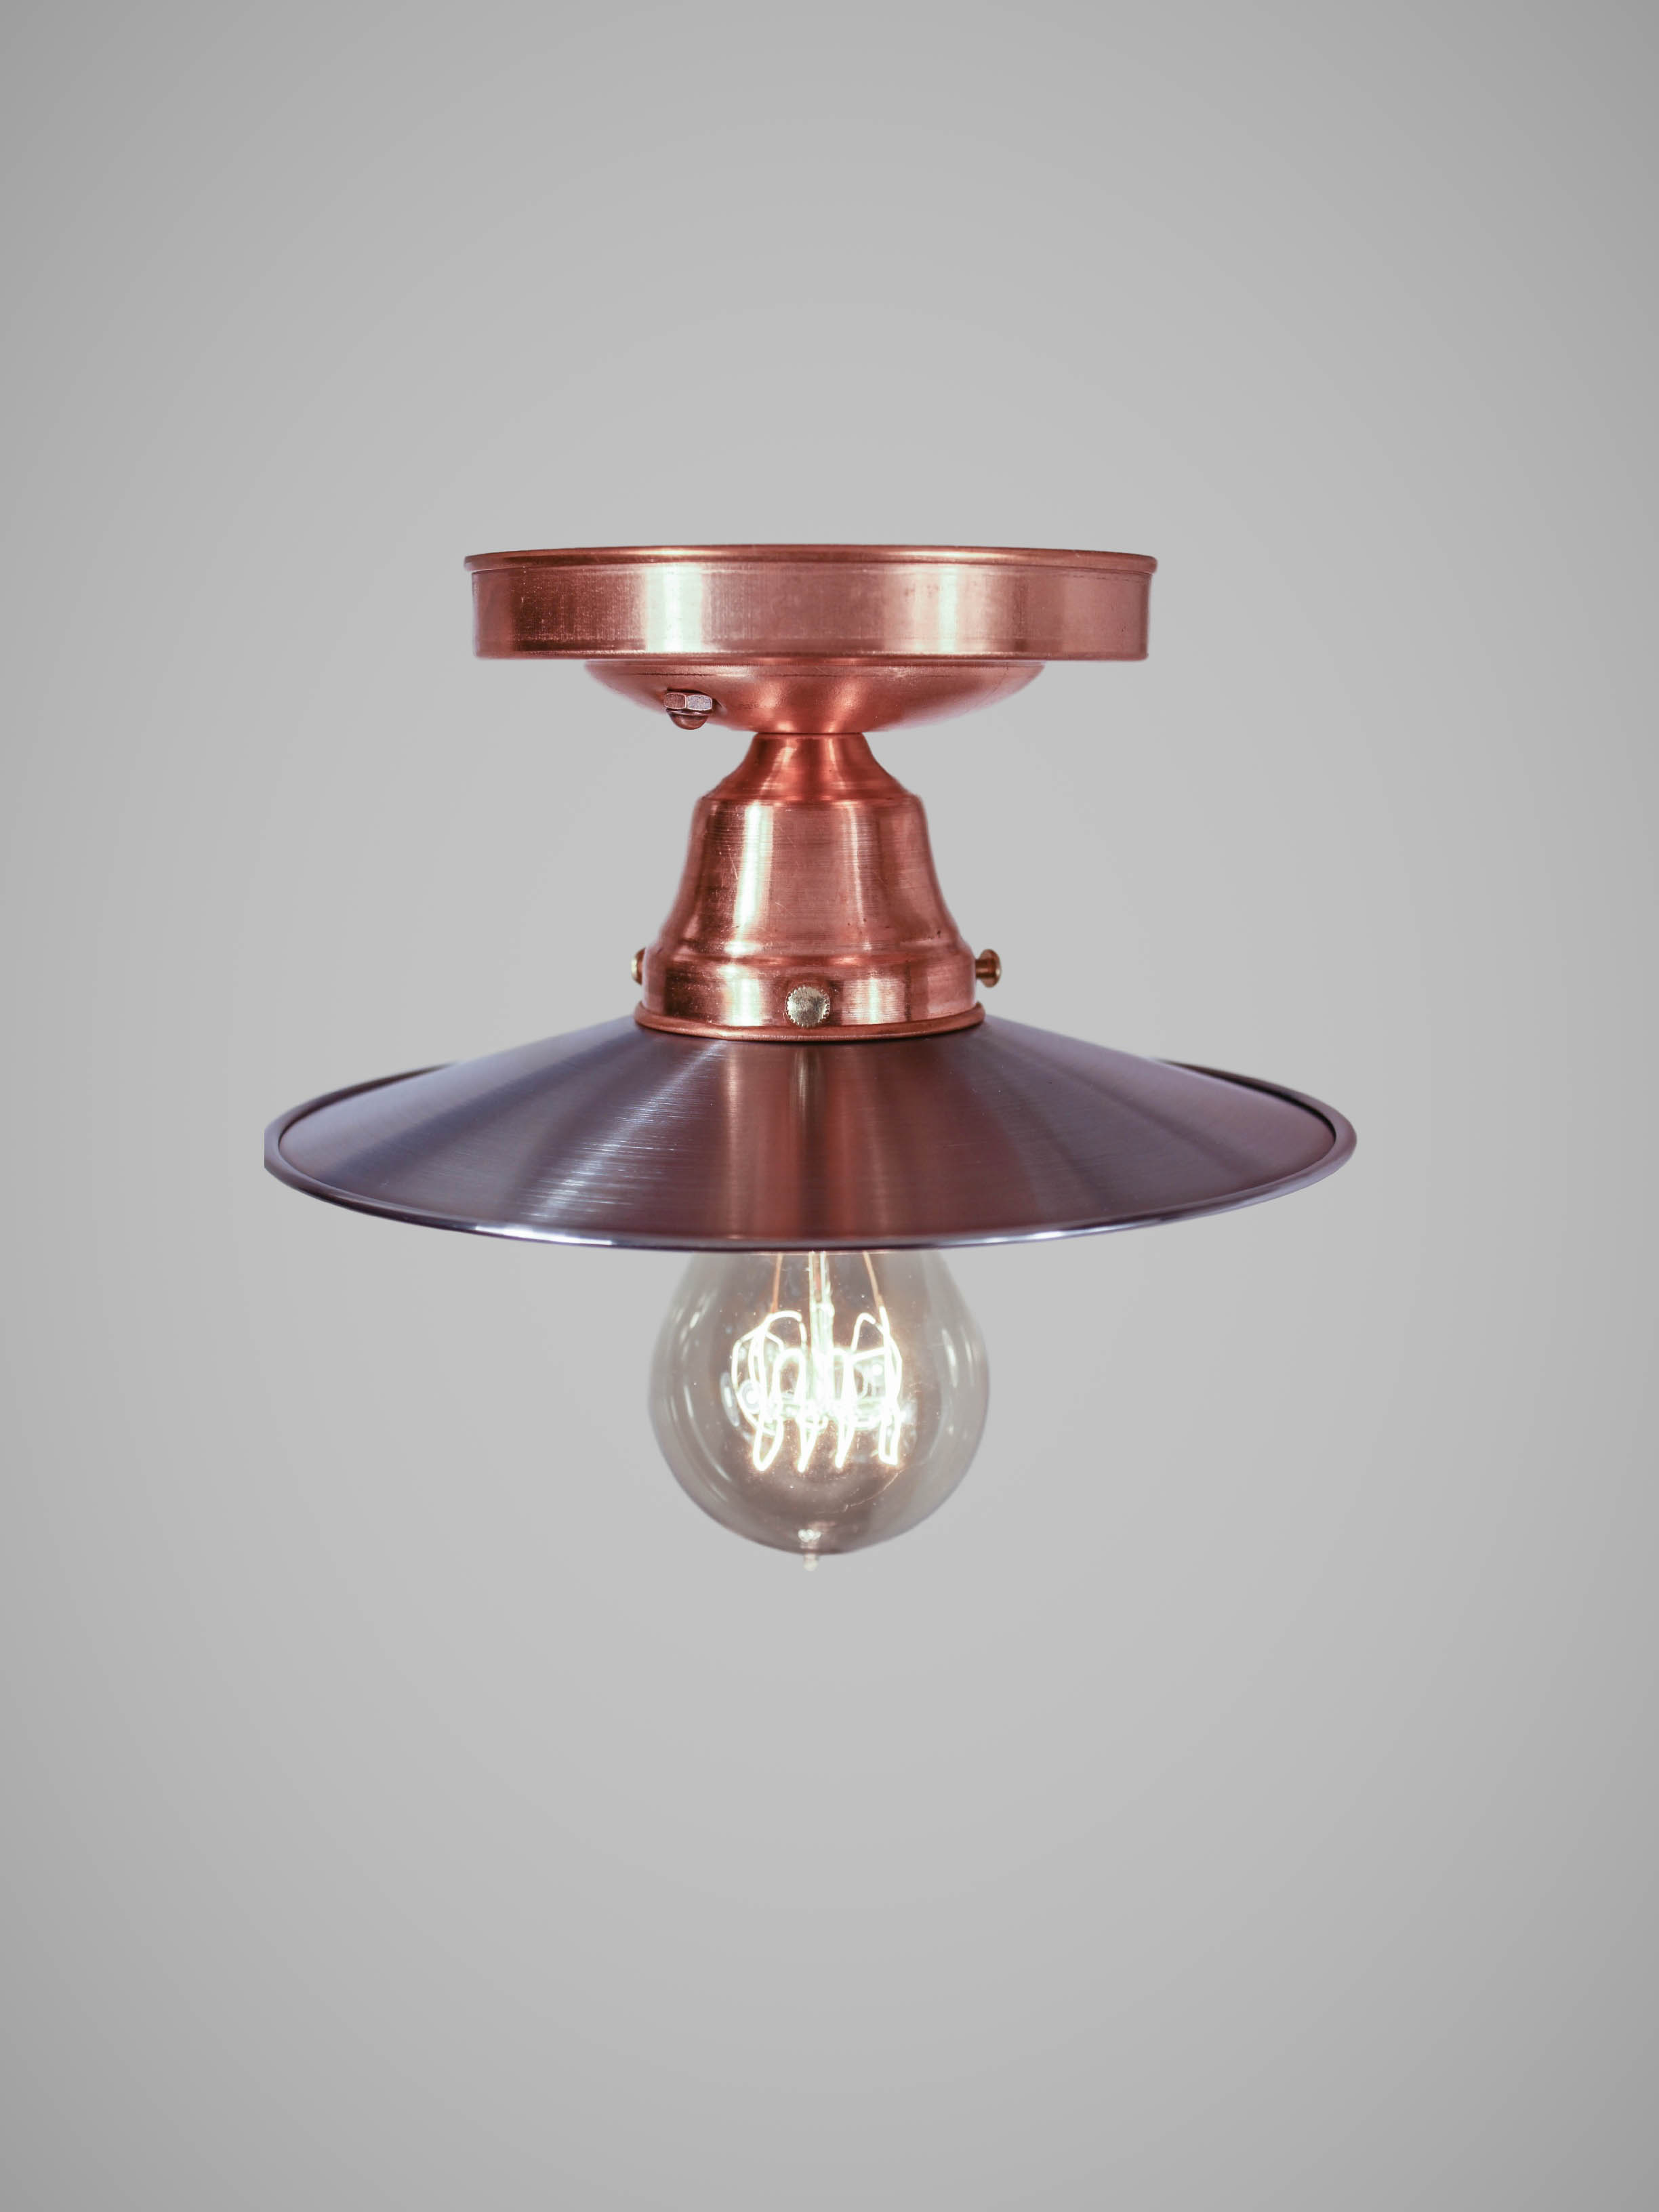 Copper Flushmount Ceiling Light Vintage Industrial Steampunk Ceiling Lamp Cafe Bar Library